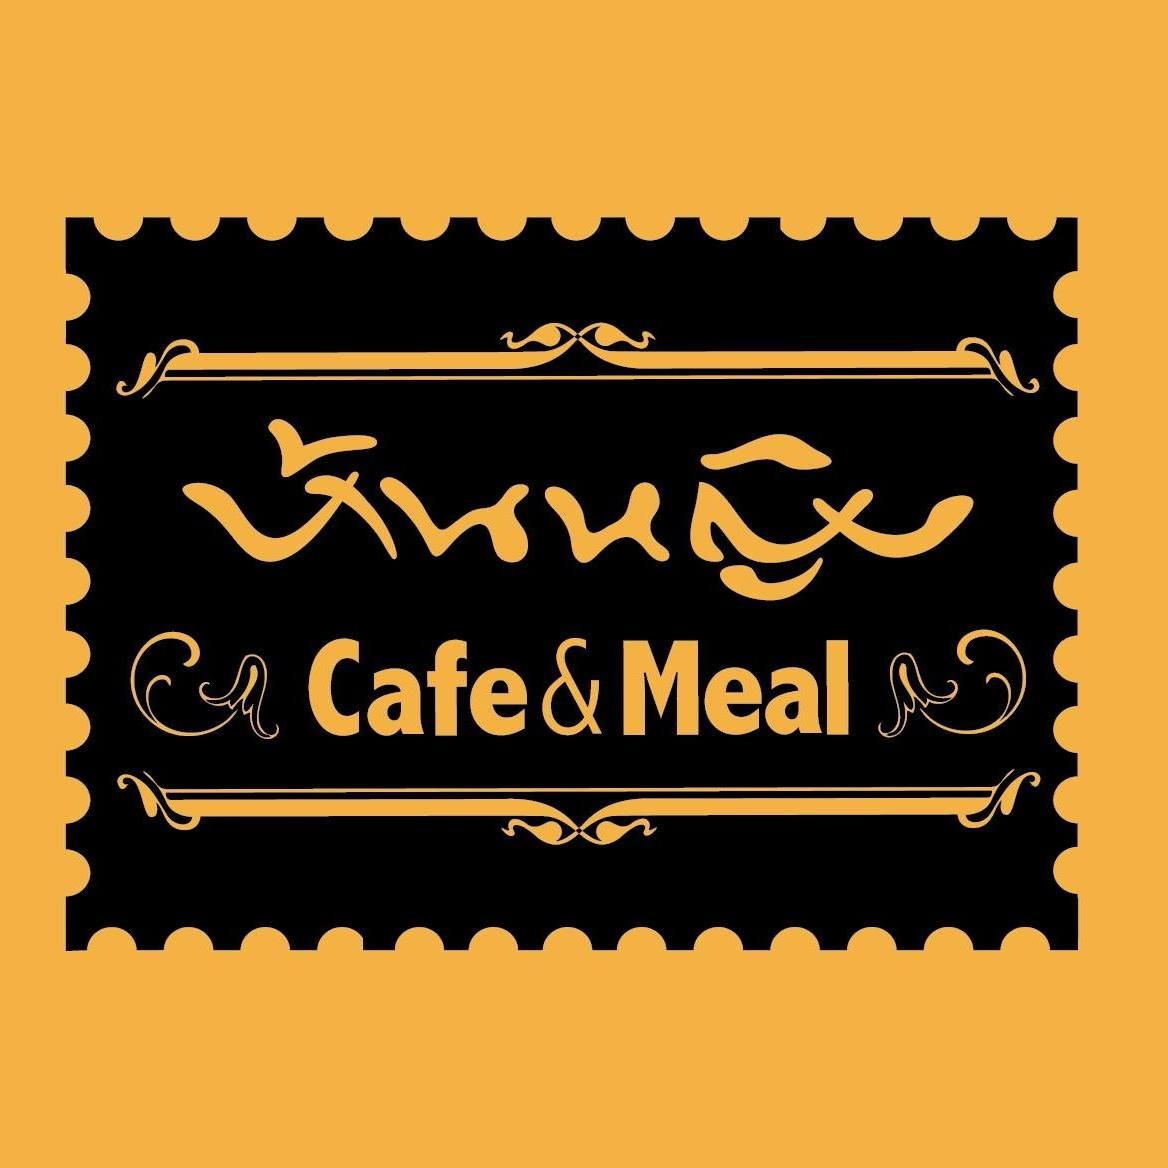 Baanying Cafe & Meal logo